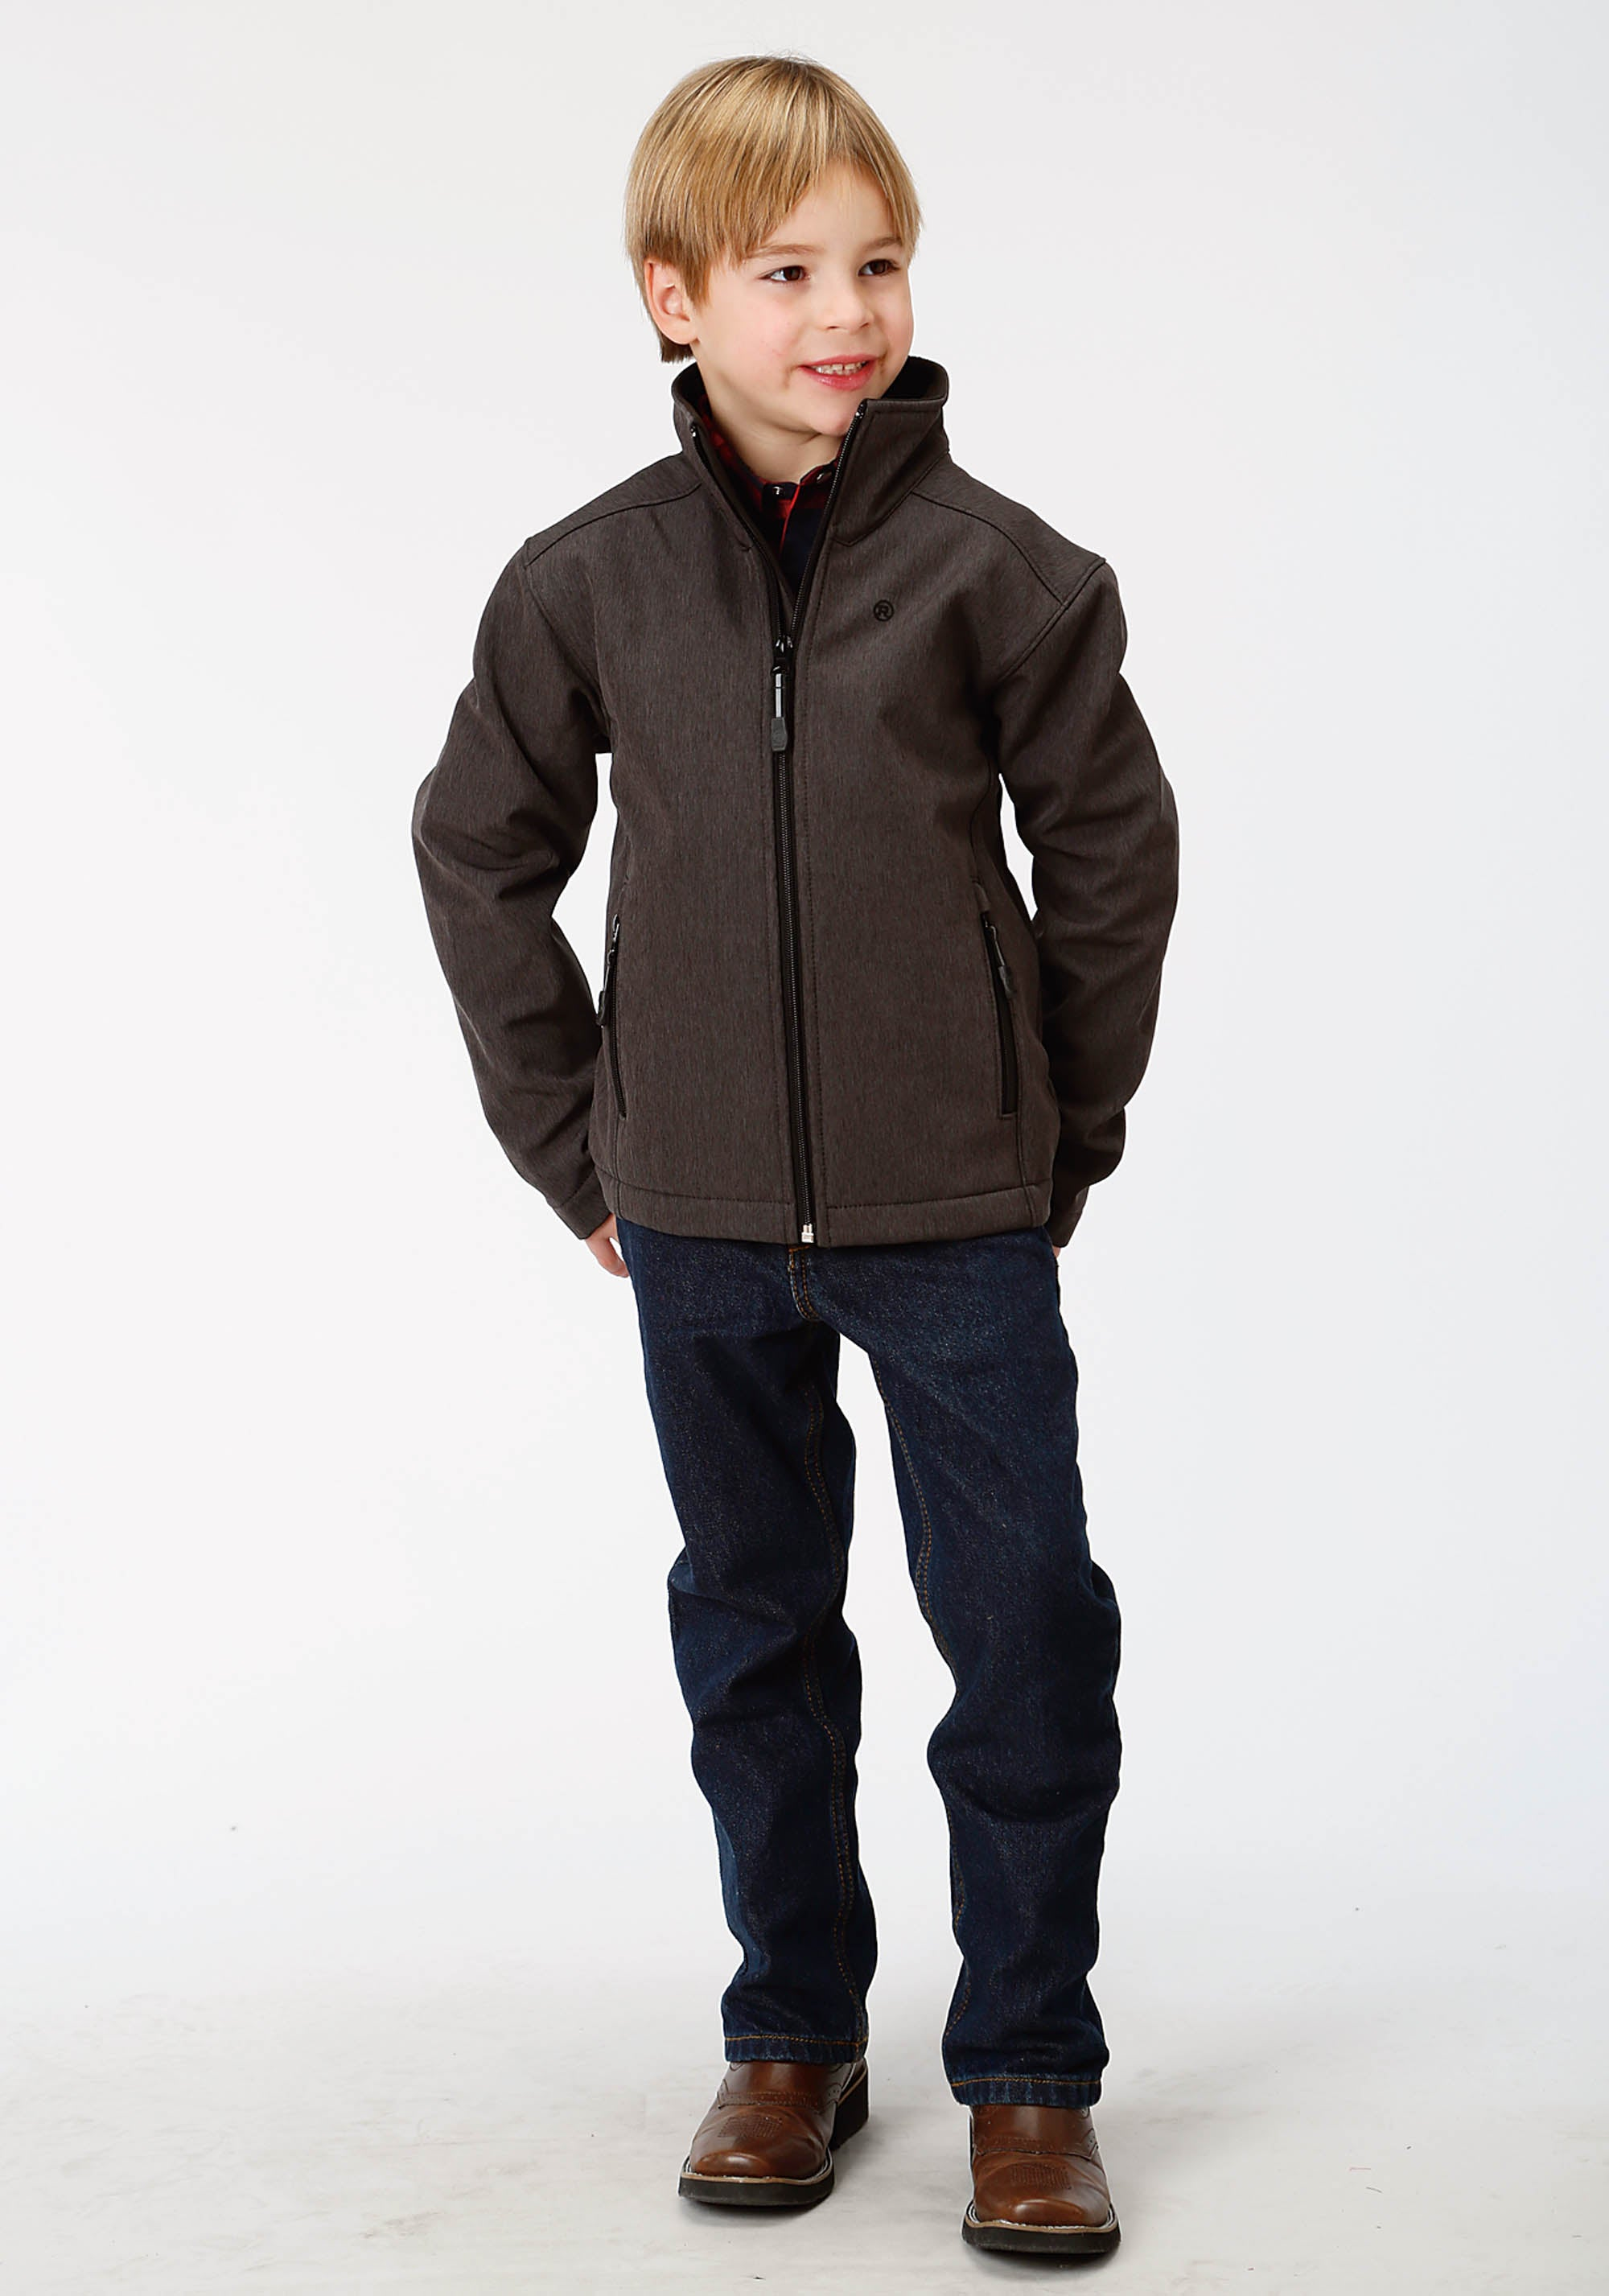 ROPER BOYS GREY 9429 GREY TEXTURED W/BLACK FLEECE ROPER OUTERWEAR- BOYS JACKET